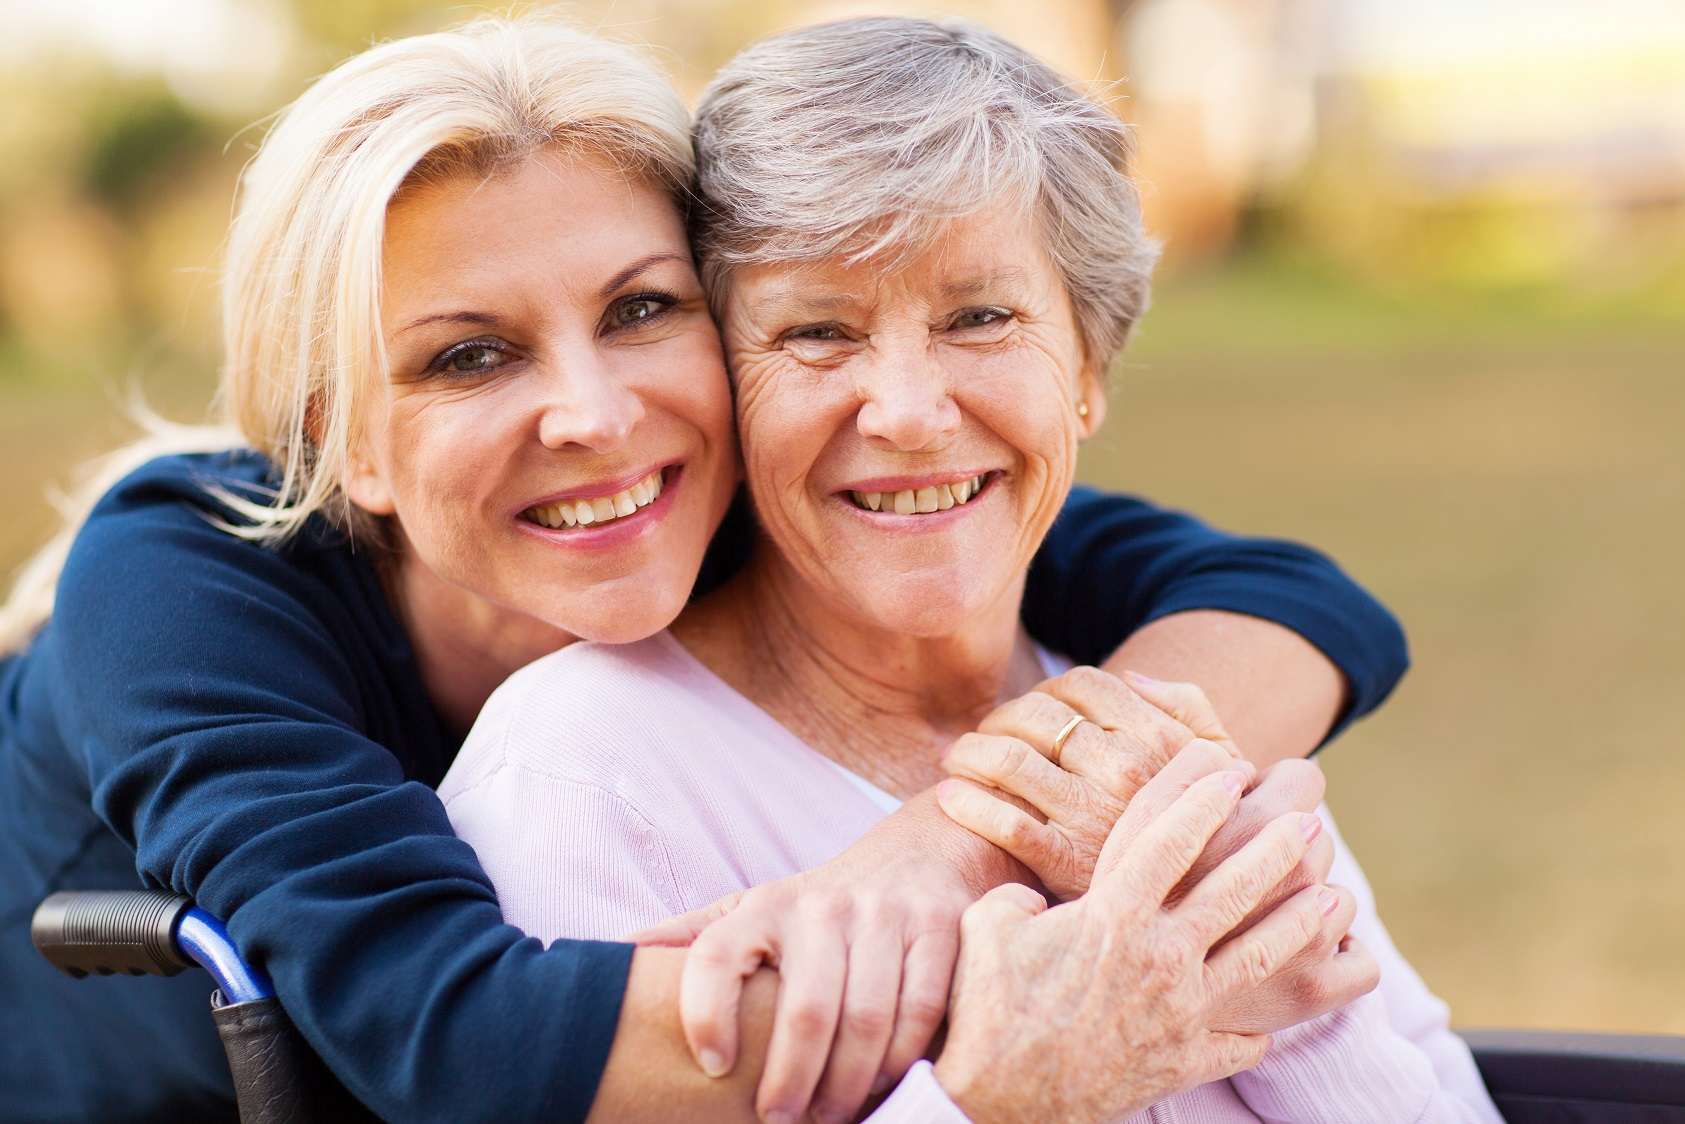 mothers day activities for seniors